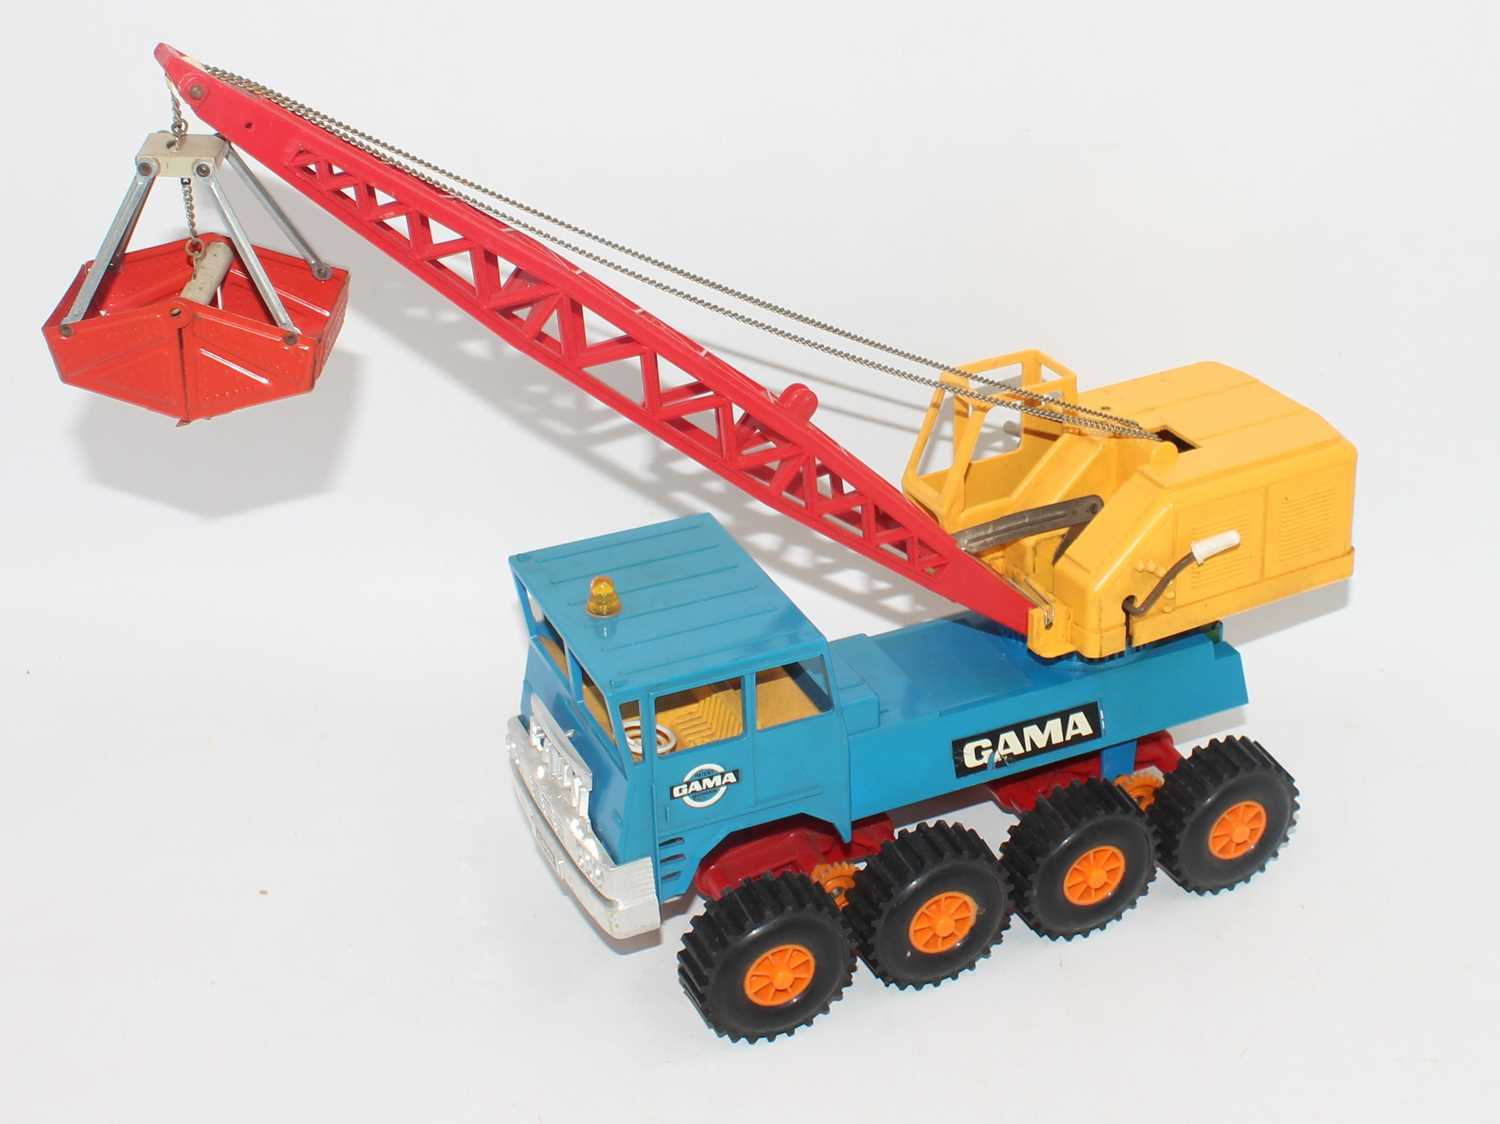 A Gama of West Germany, tinplate and plastic model of a Faun 8x8 heavy-duty crane, comprising a